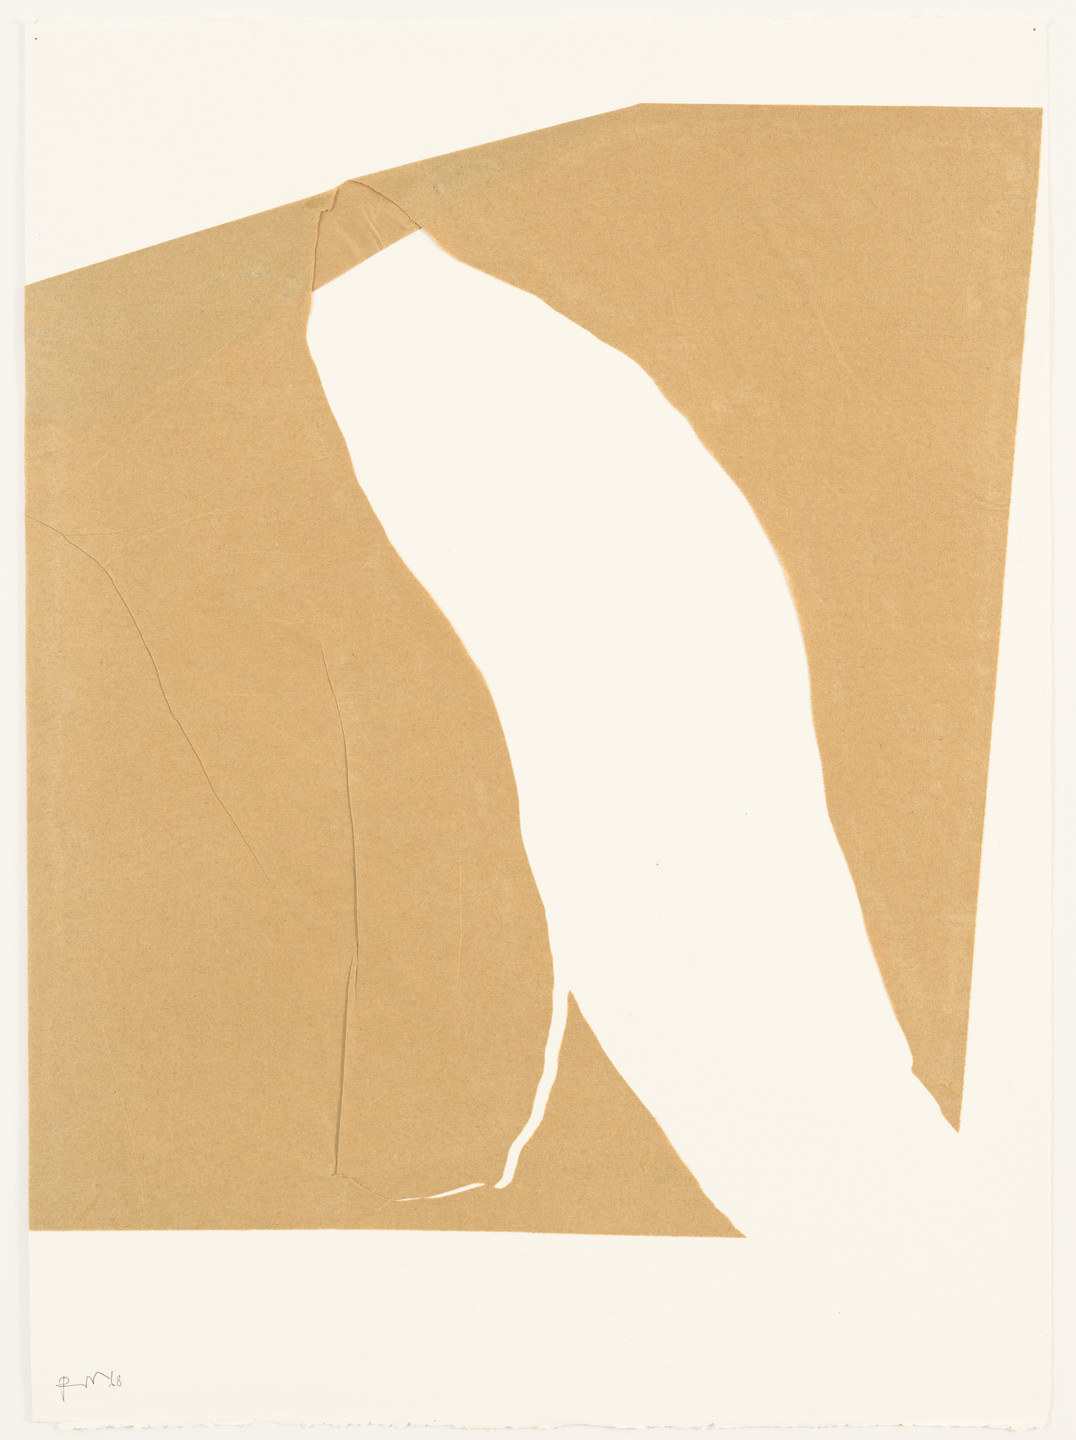 Robert Motherwell. In Beige, with White, 2. 1968